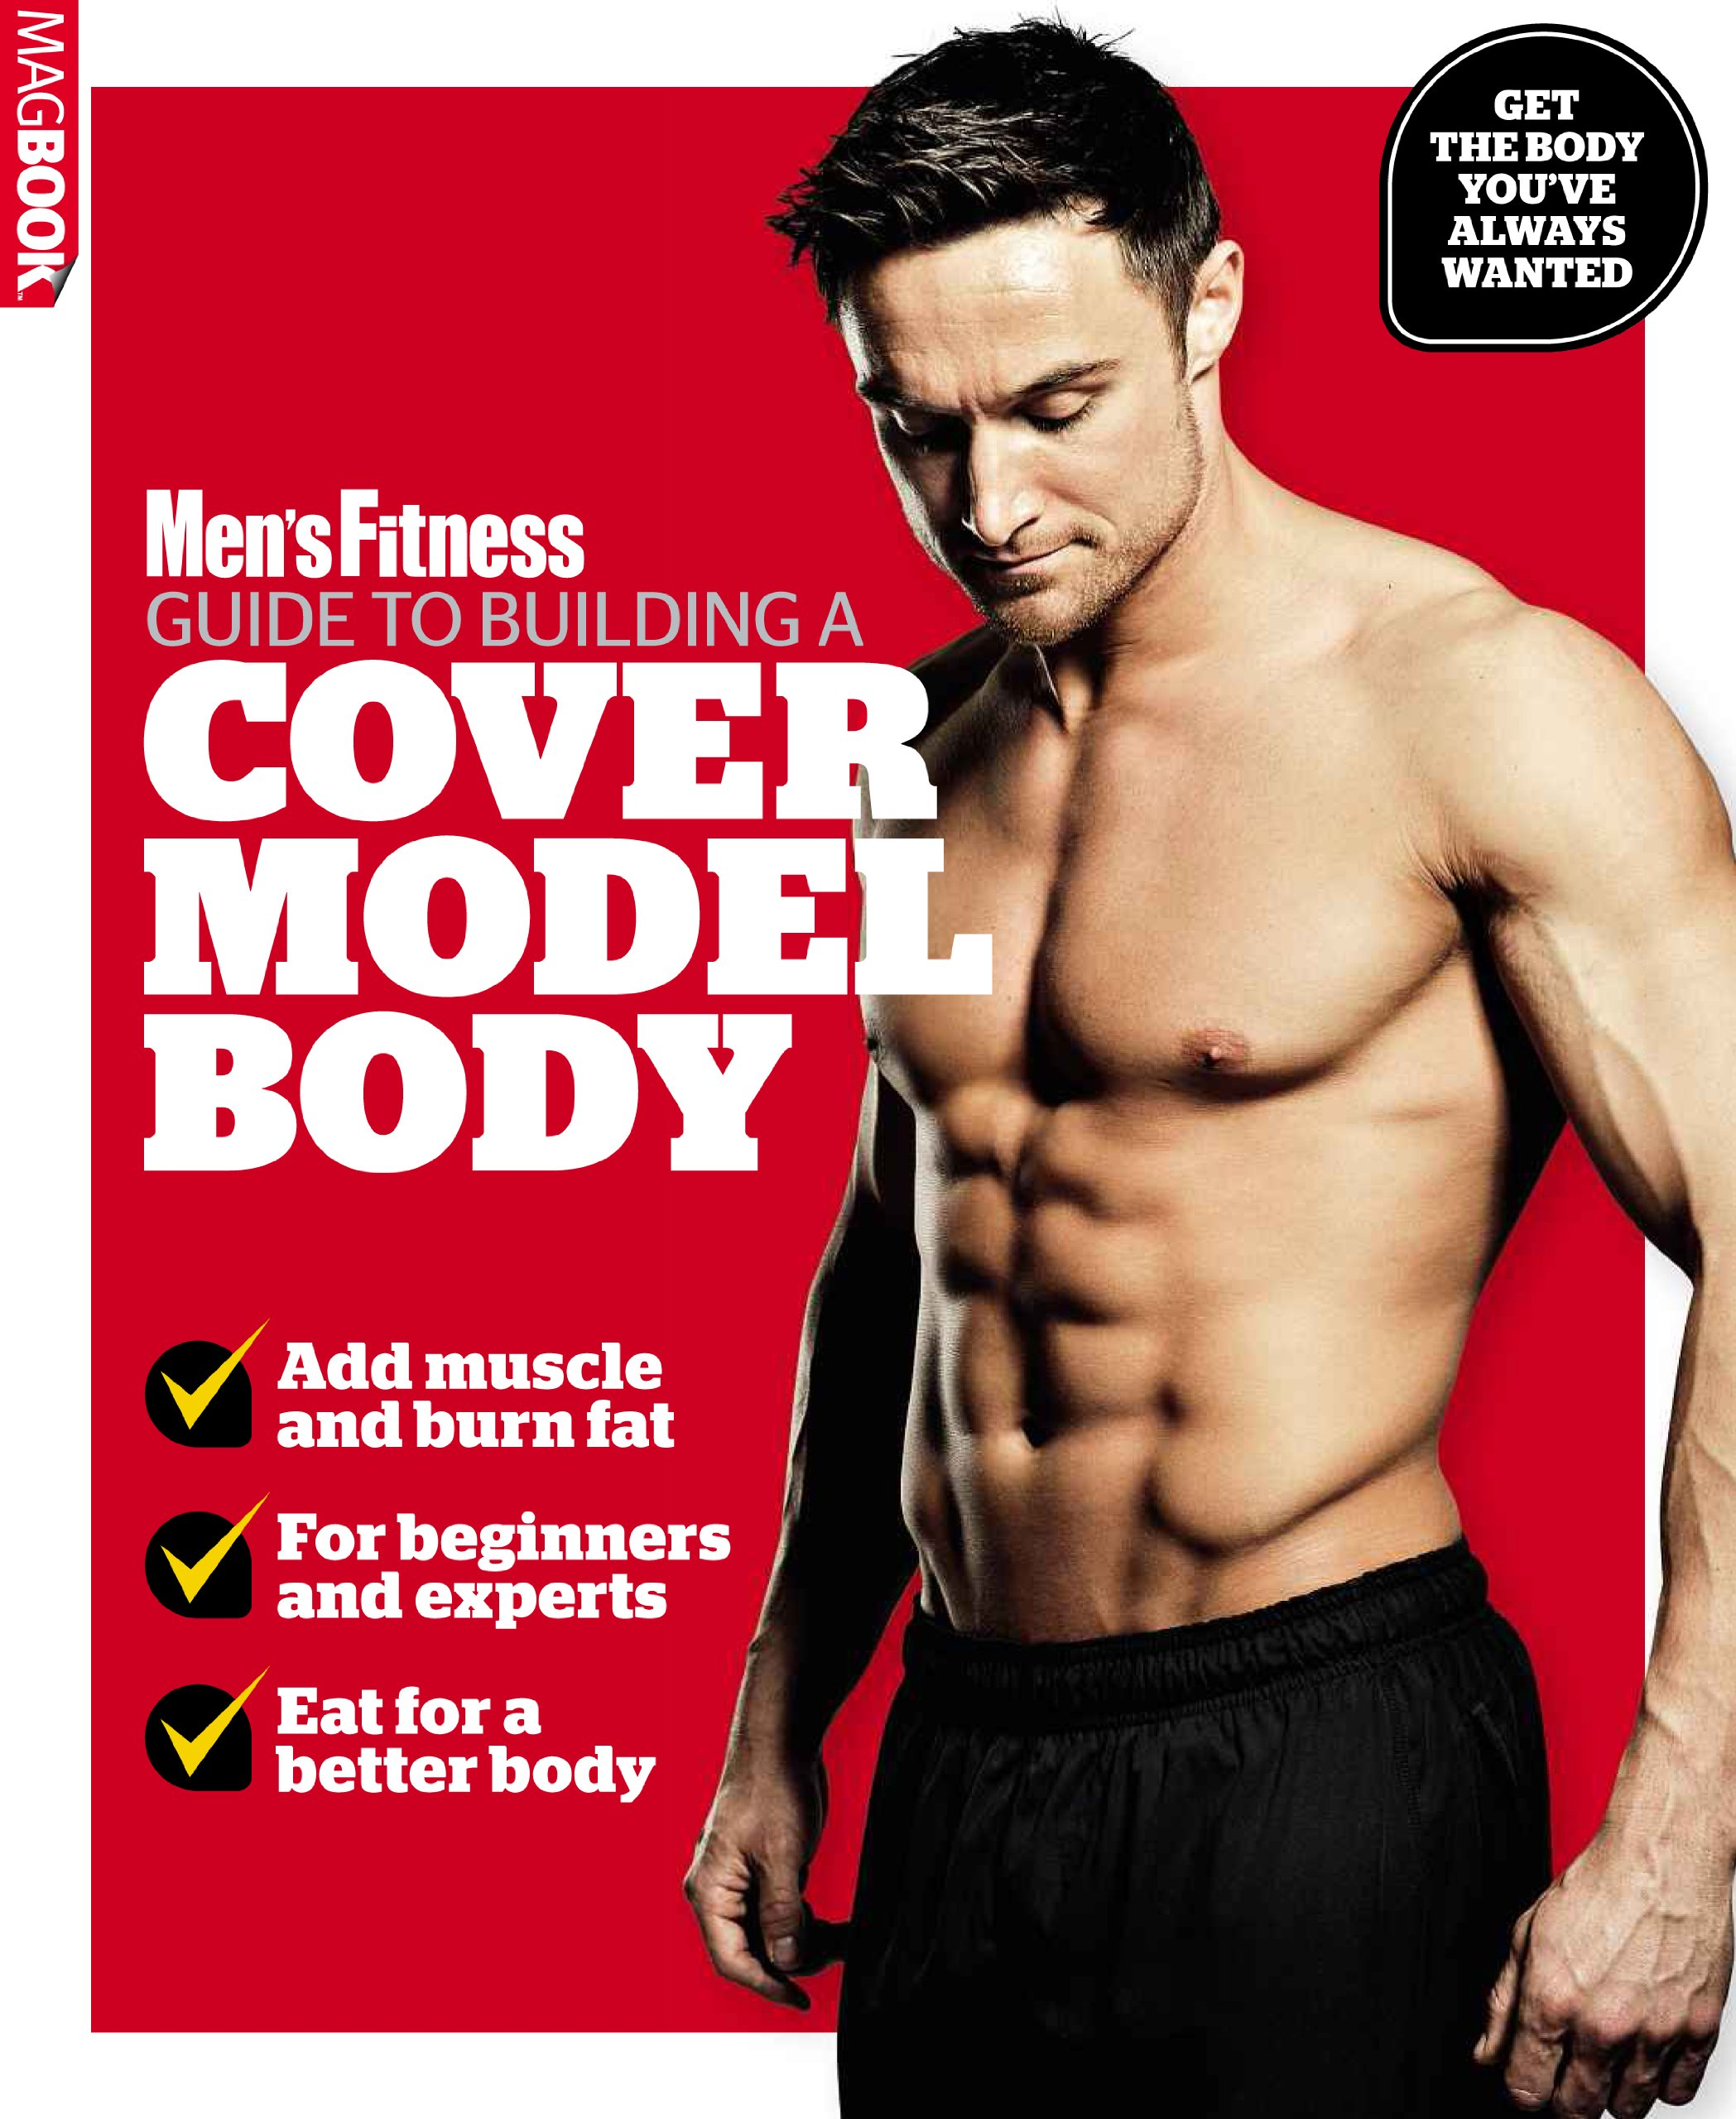 mens fitness guide to building a cover model body amazoncouk mens fitness magazine joe warner 9781781060179 books